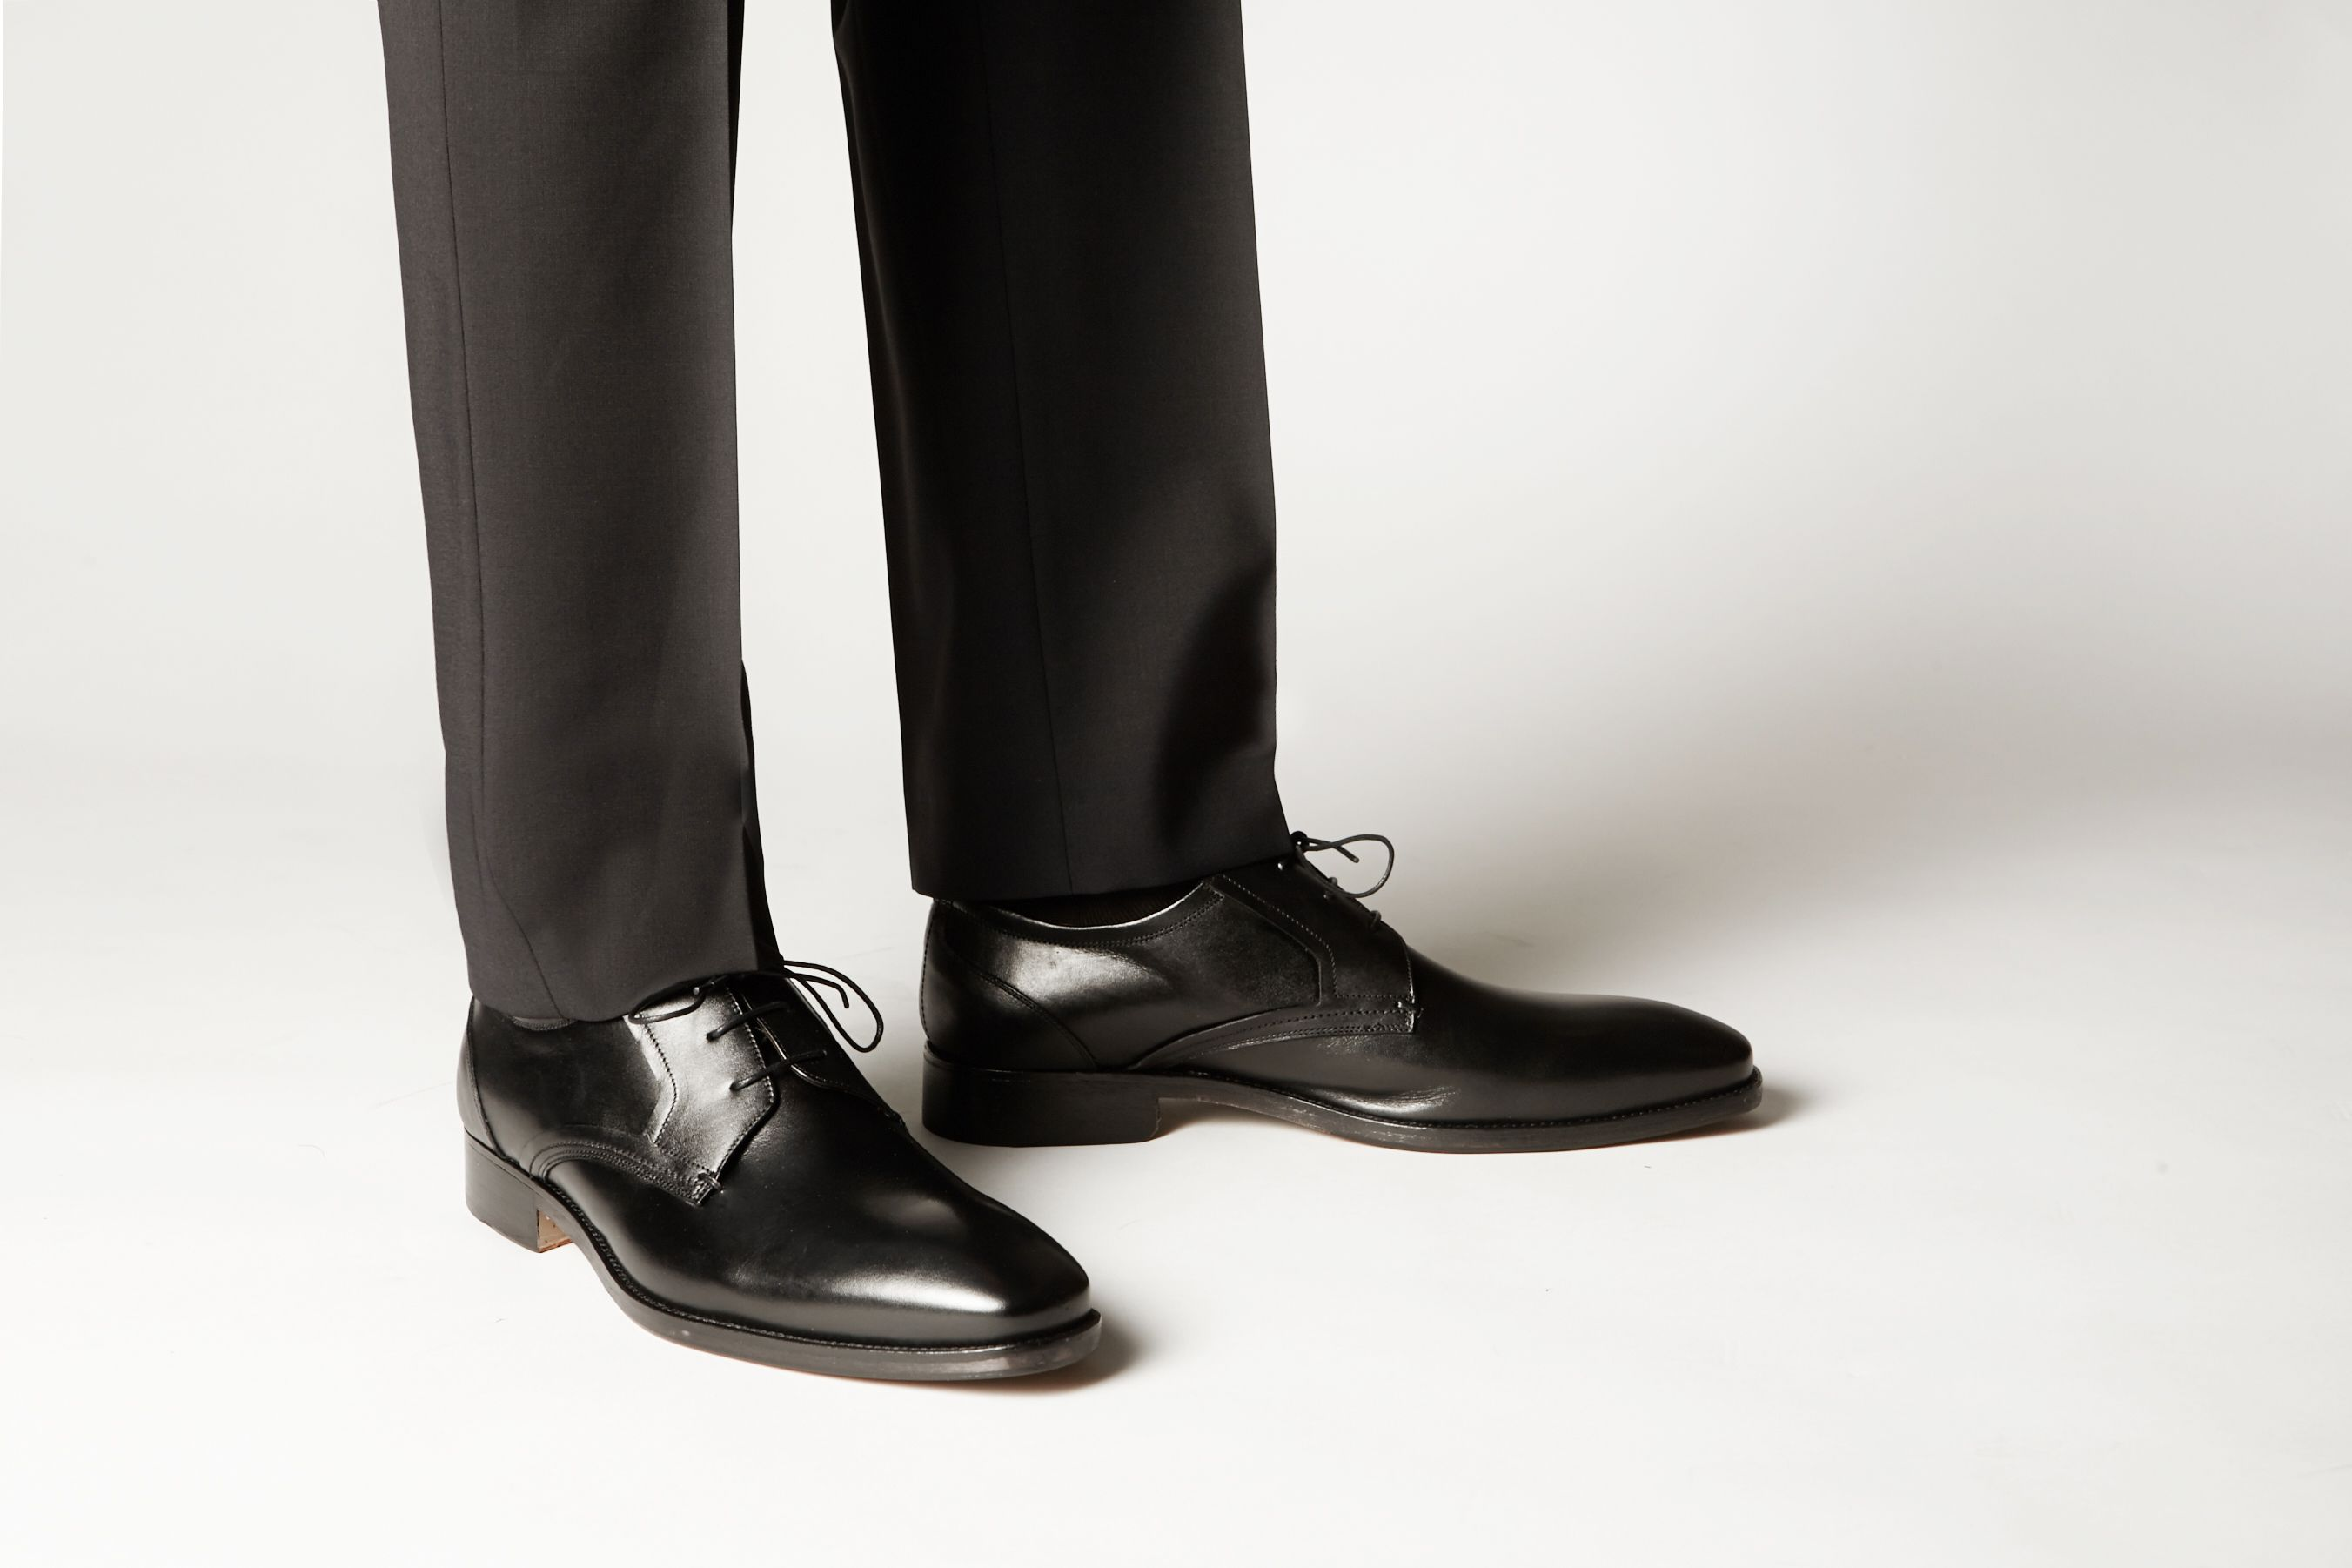 Austin Reed AW14 Shoe Collection - The Brogues | Austin Reed | AW14 Shoes |  Pinterest | Brogues